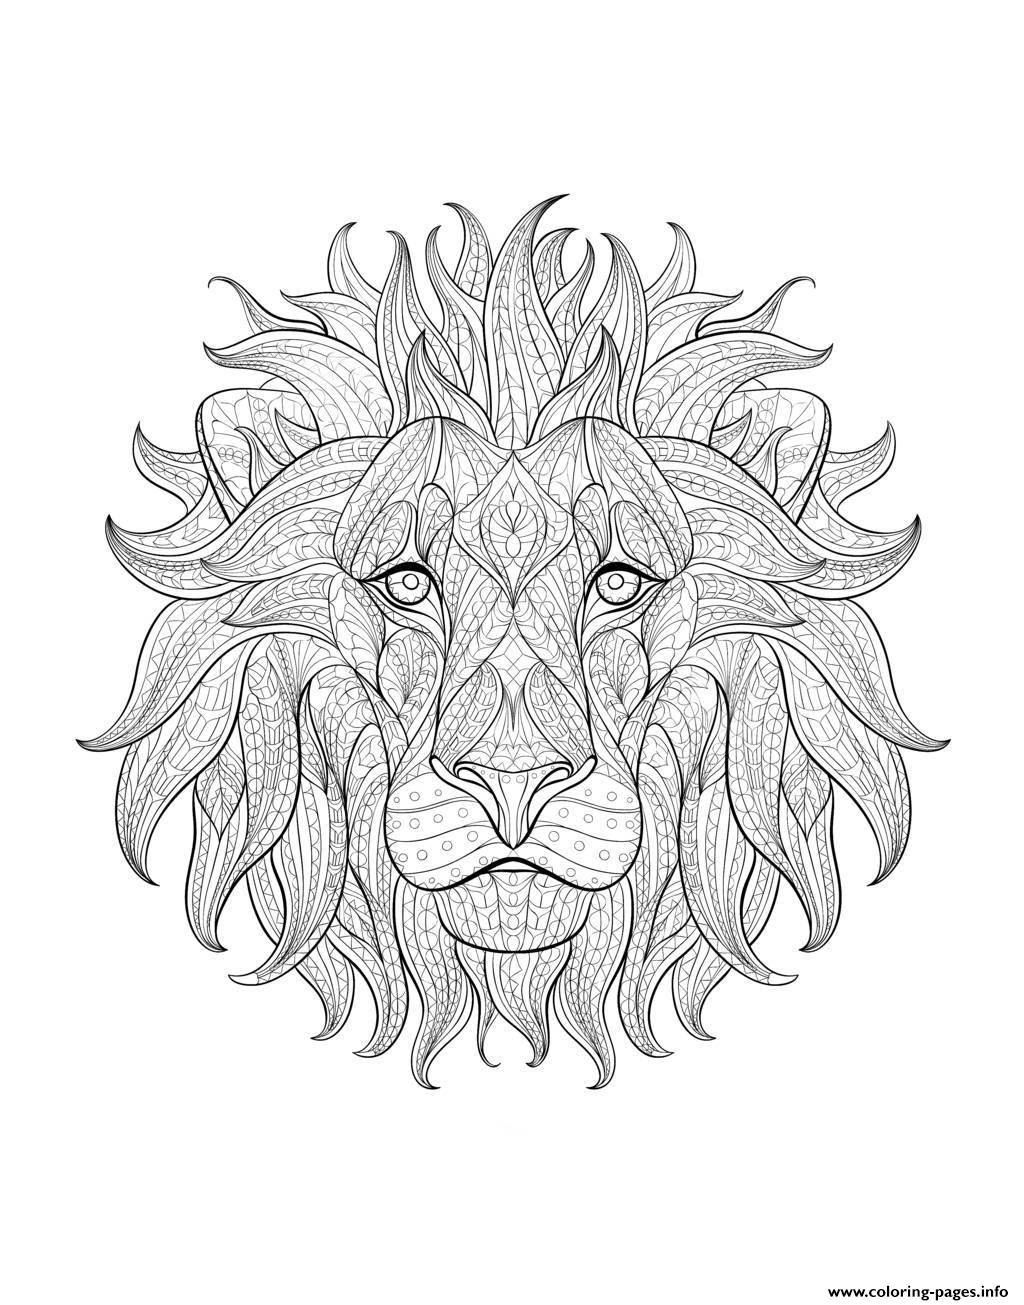 Adult Africa Lion Head 3 coloring pages